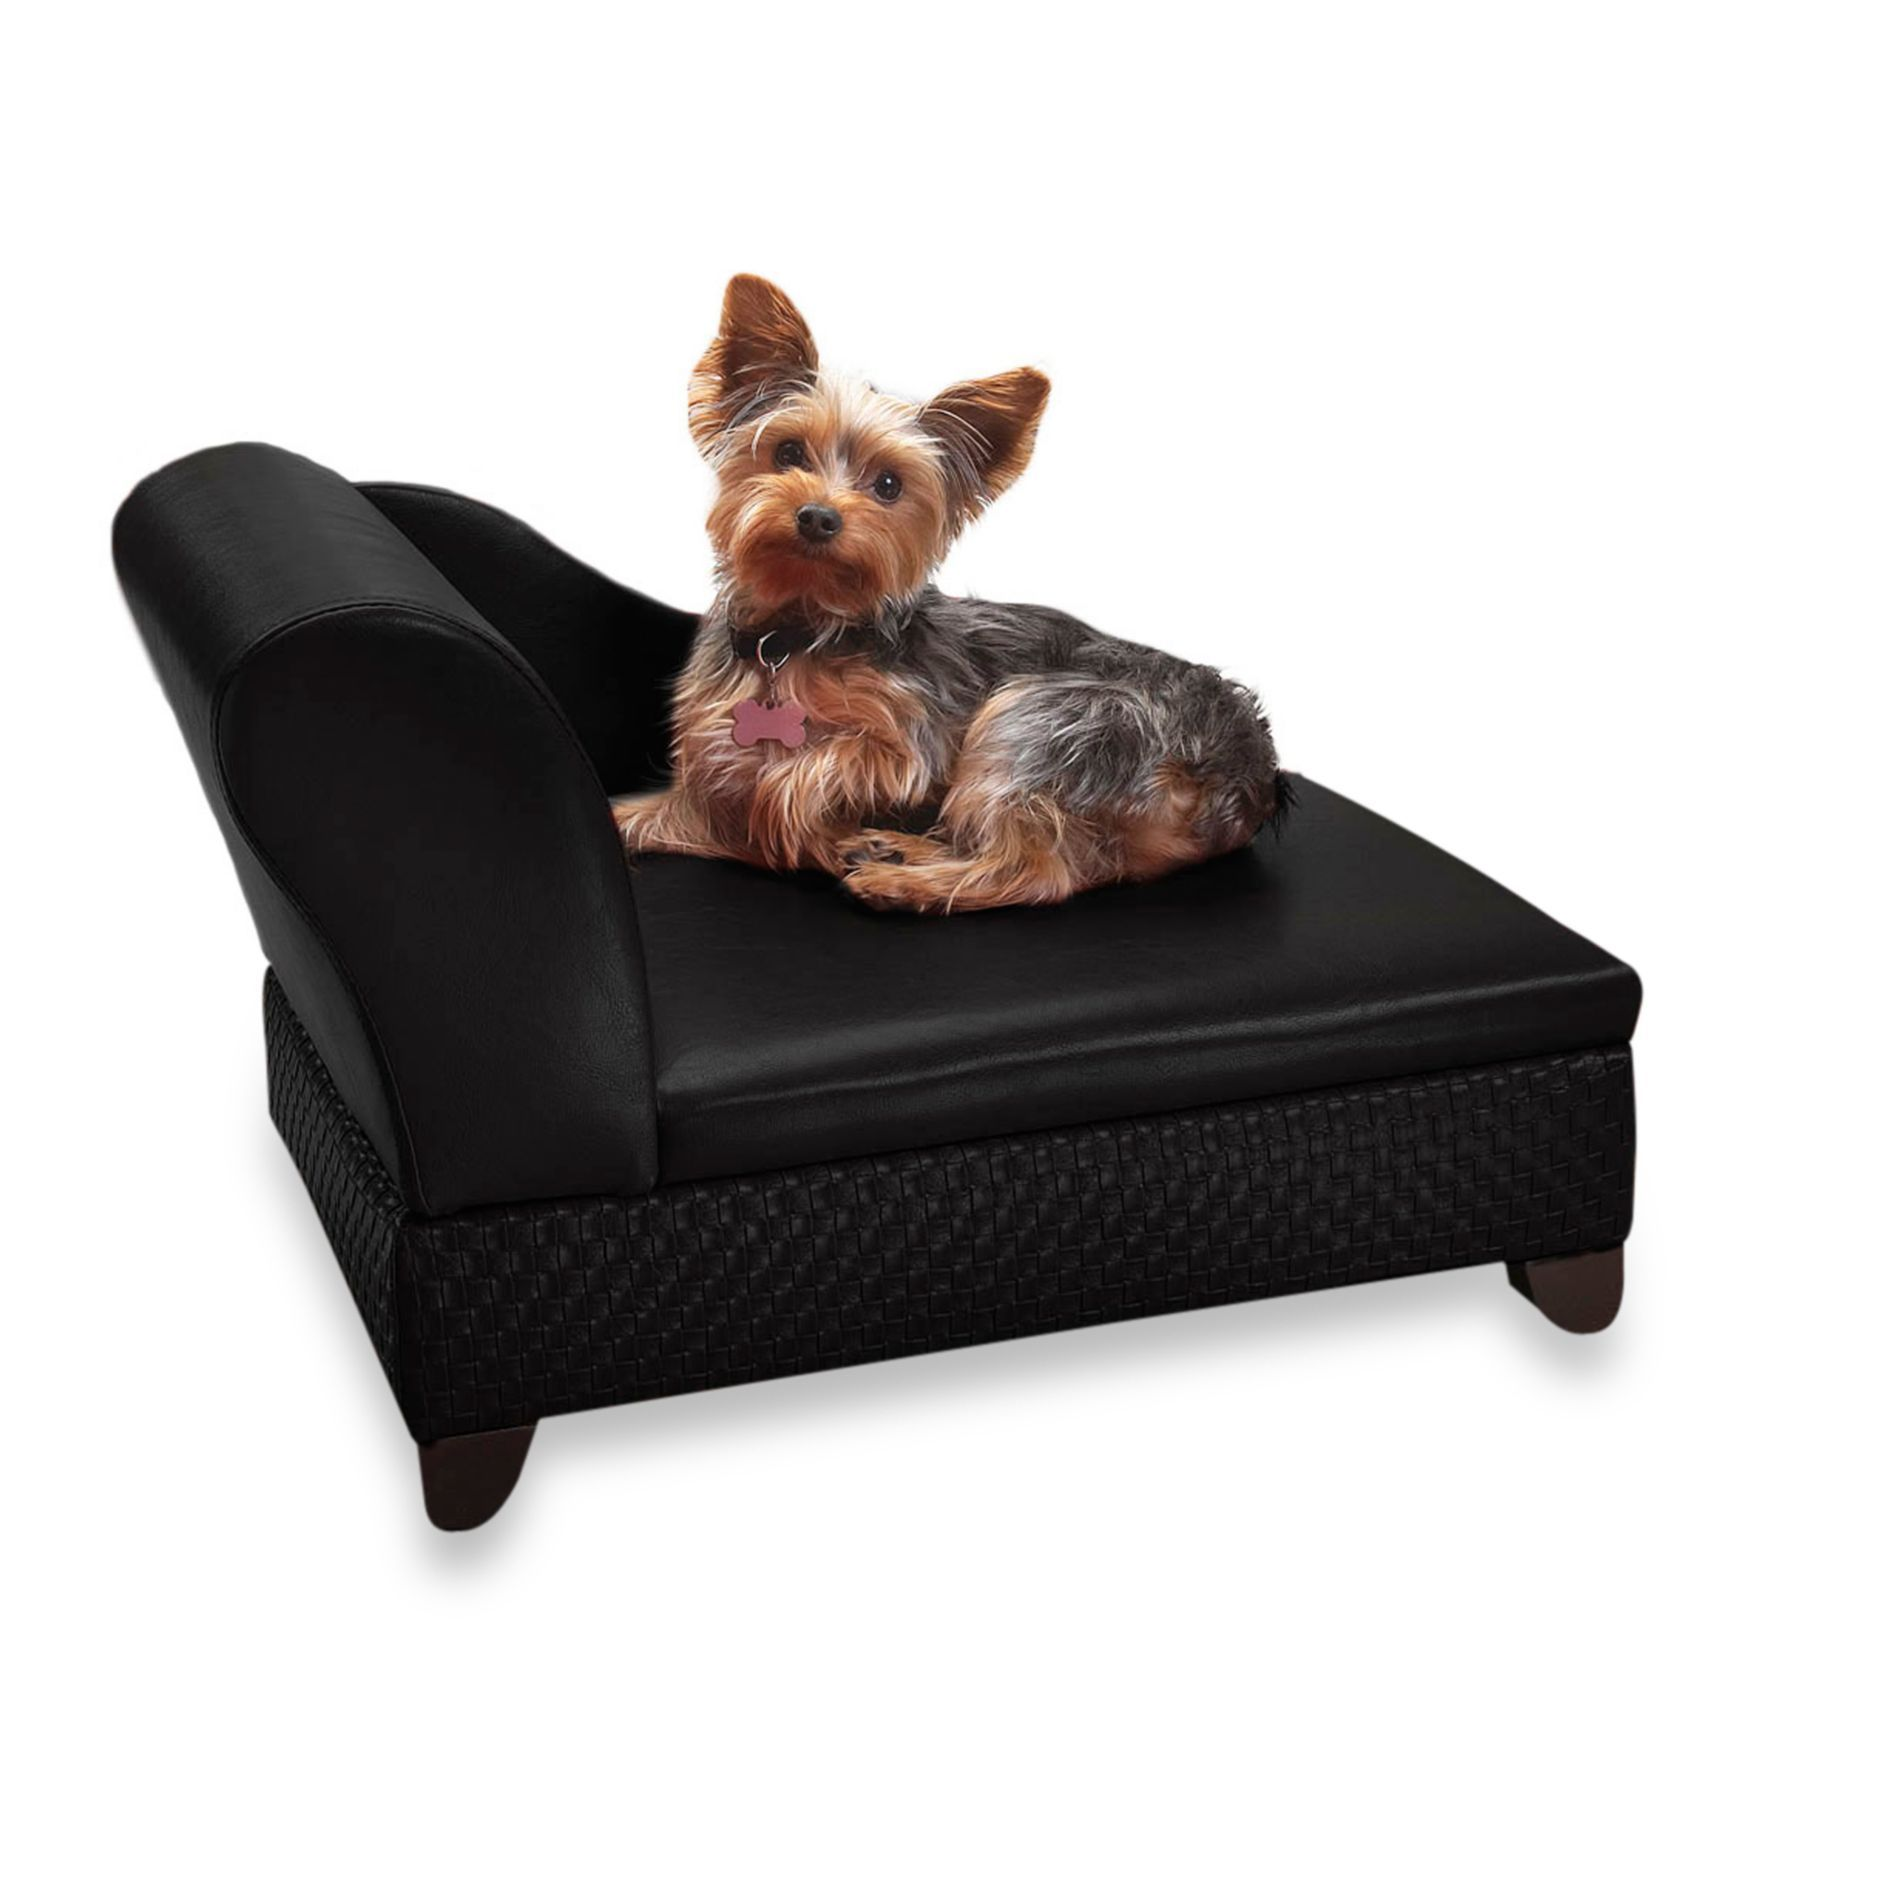 Storage Pet Bed from Bed Bath & Beyond! Pet sofa bed